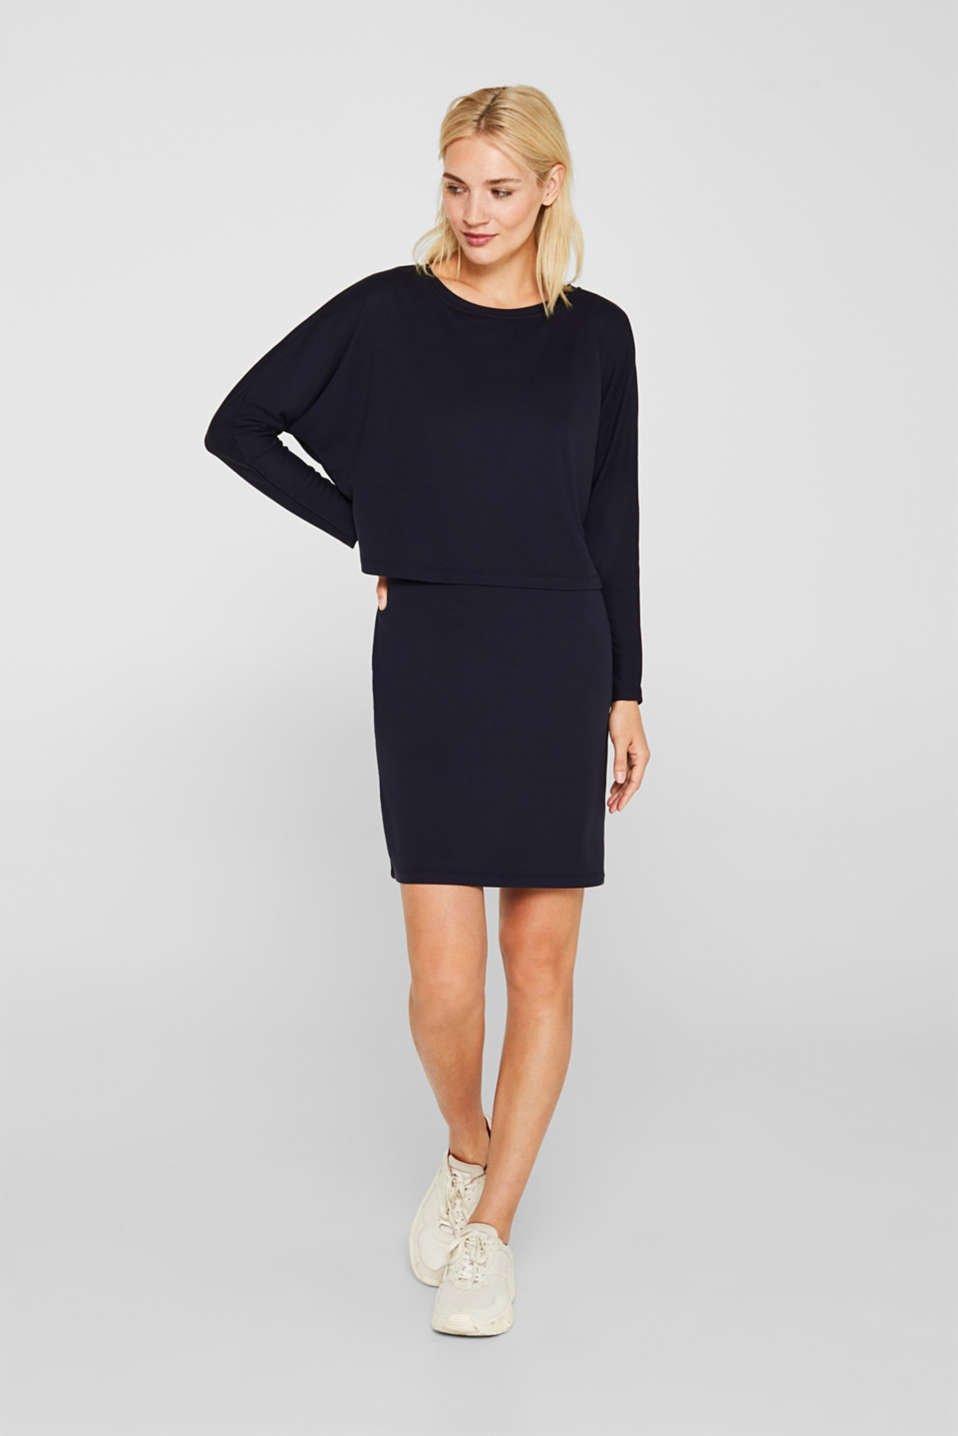 Stretch jersey dress in a layered look, NAVY, detail image number 1